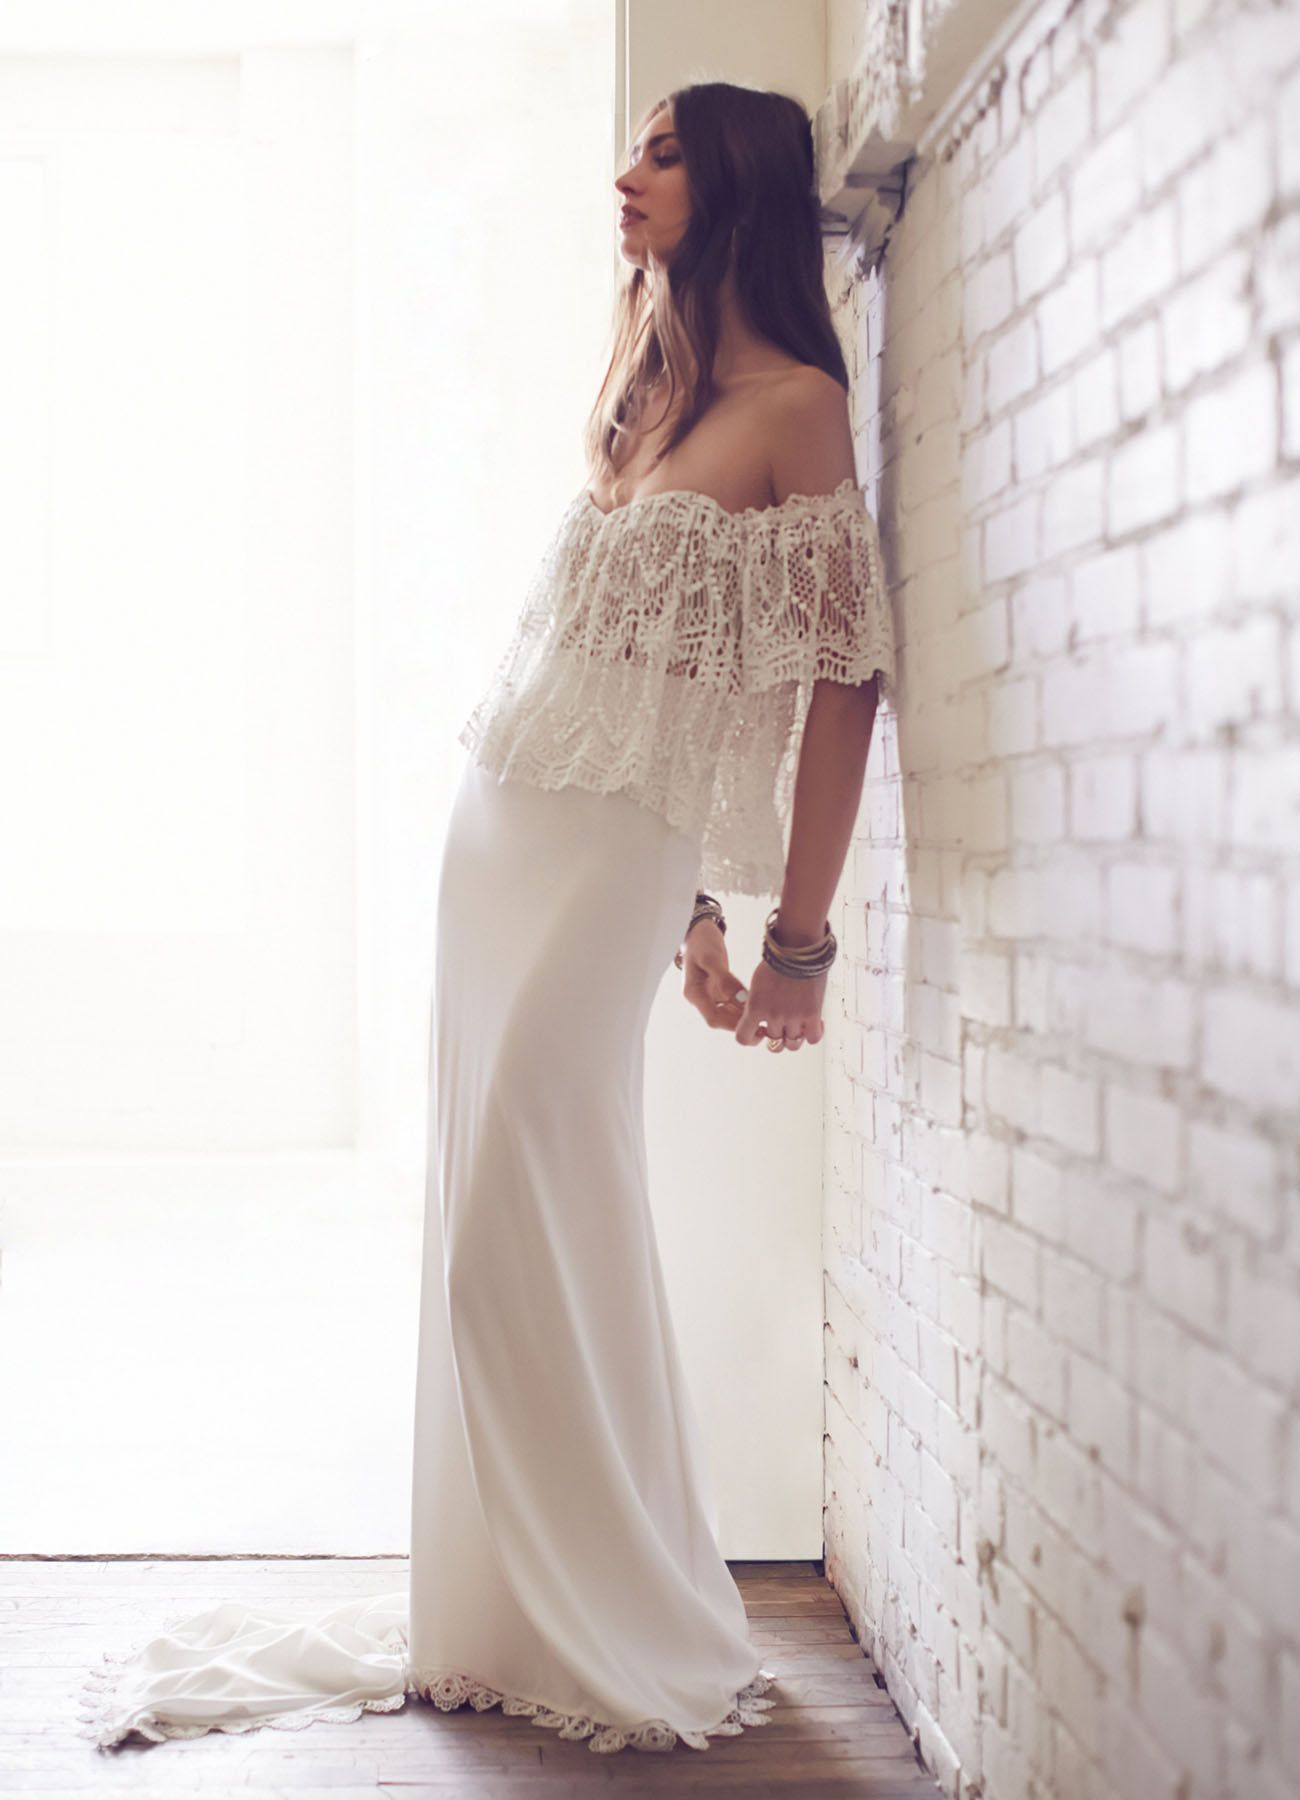 Free People Spring 2016 Wedding Dress Collection Green Wedding Shoes Bridal Dress Shops Free People Bridal Fashion